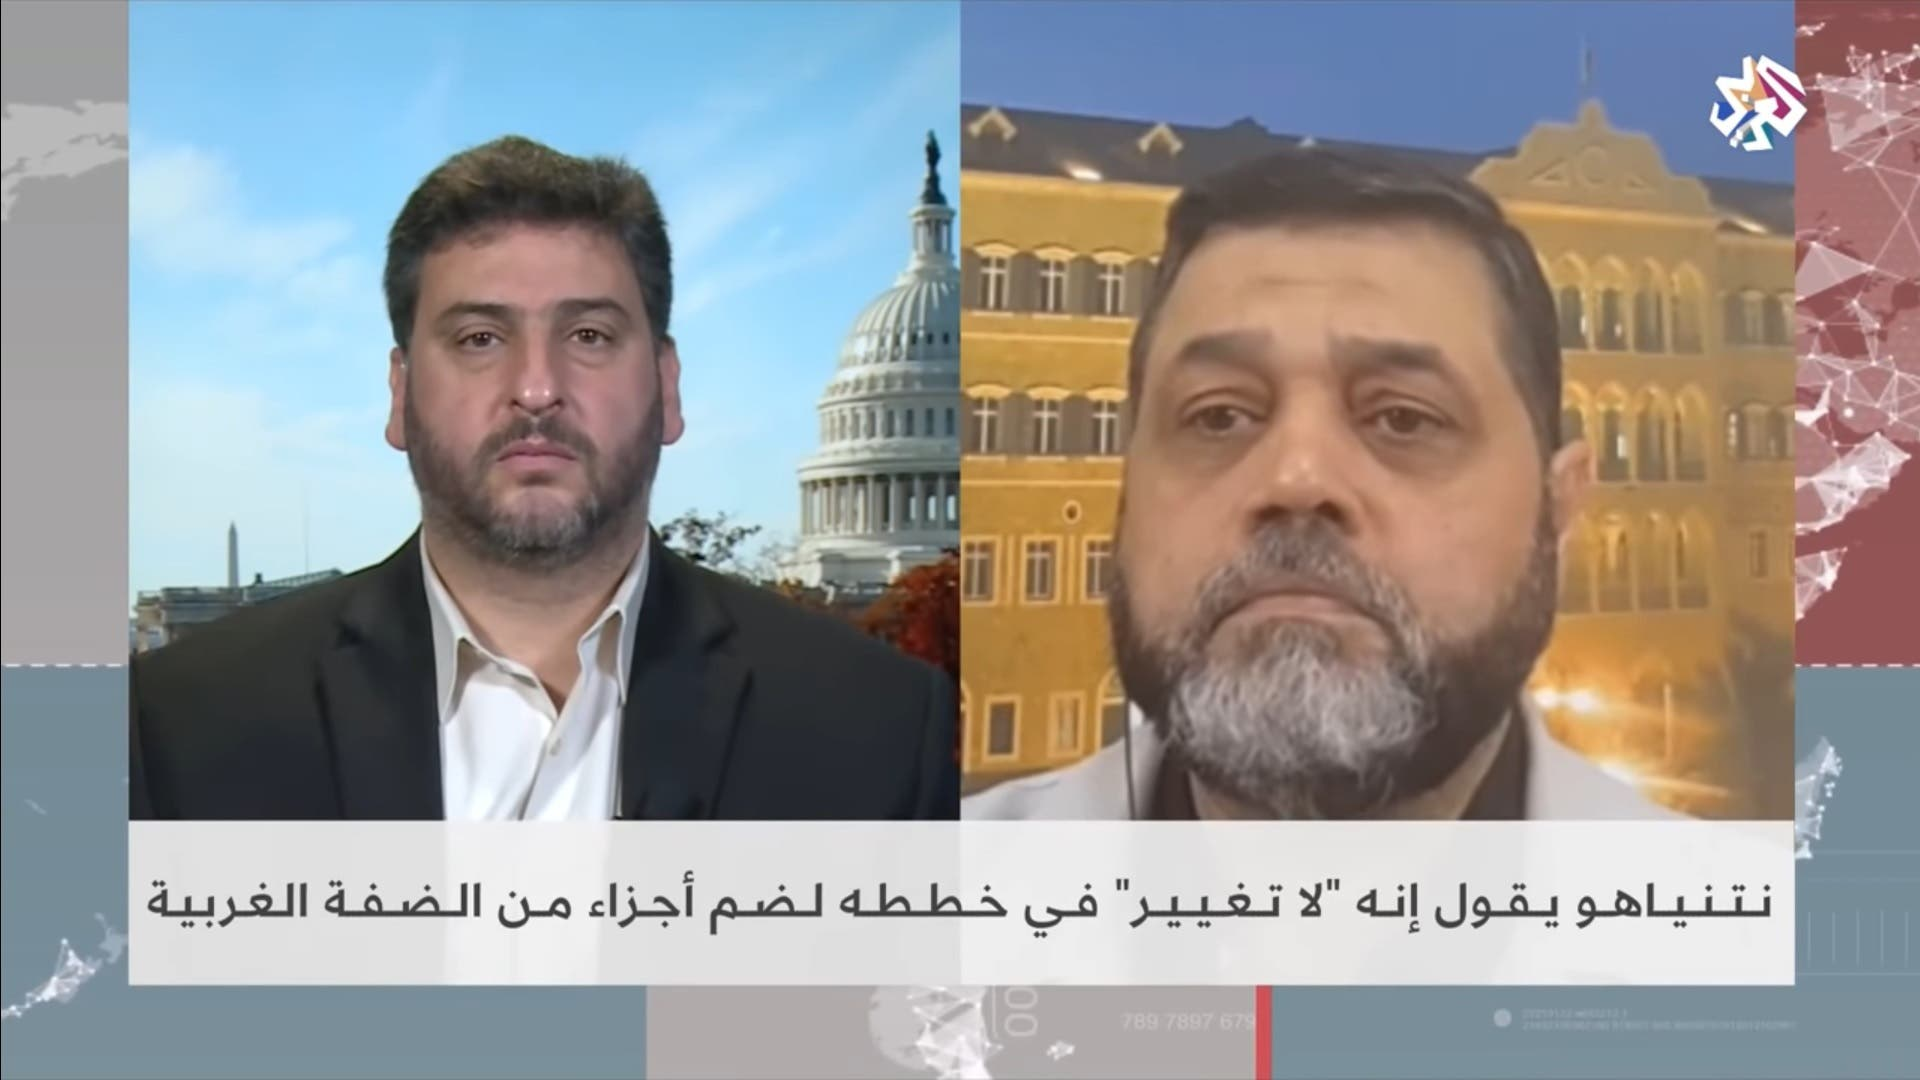 Osama Hamdan (right), the political Islamist group's chief of International Relations, appears on Al Araby television channel. (Photo via Al Araby)